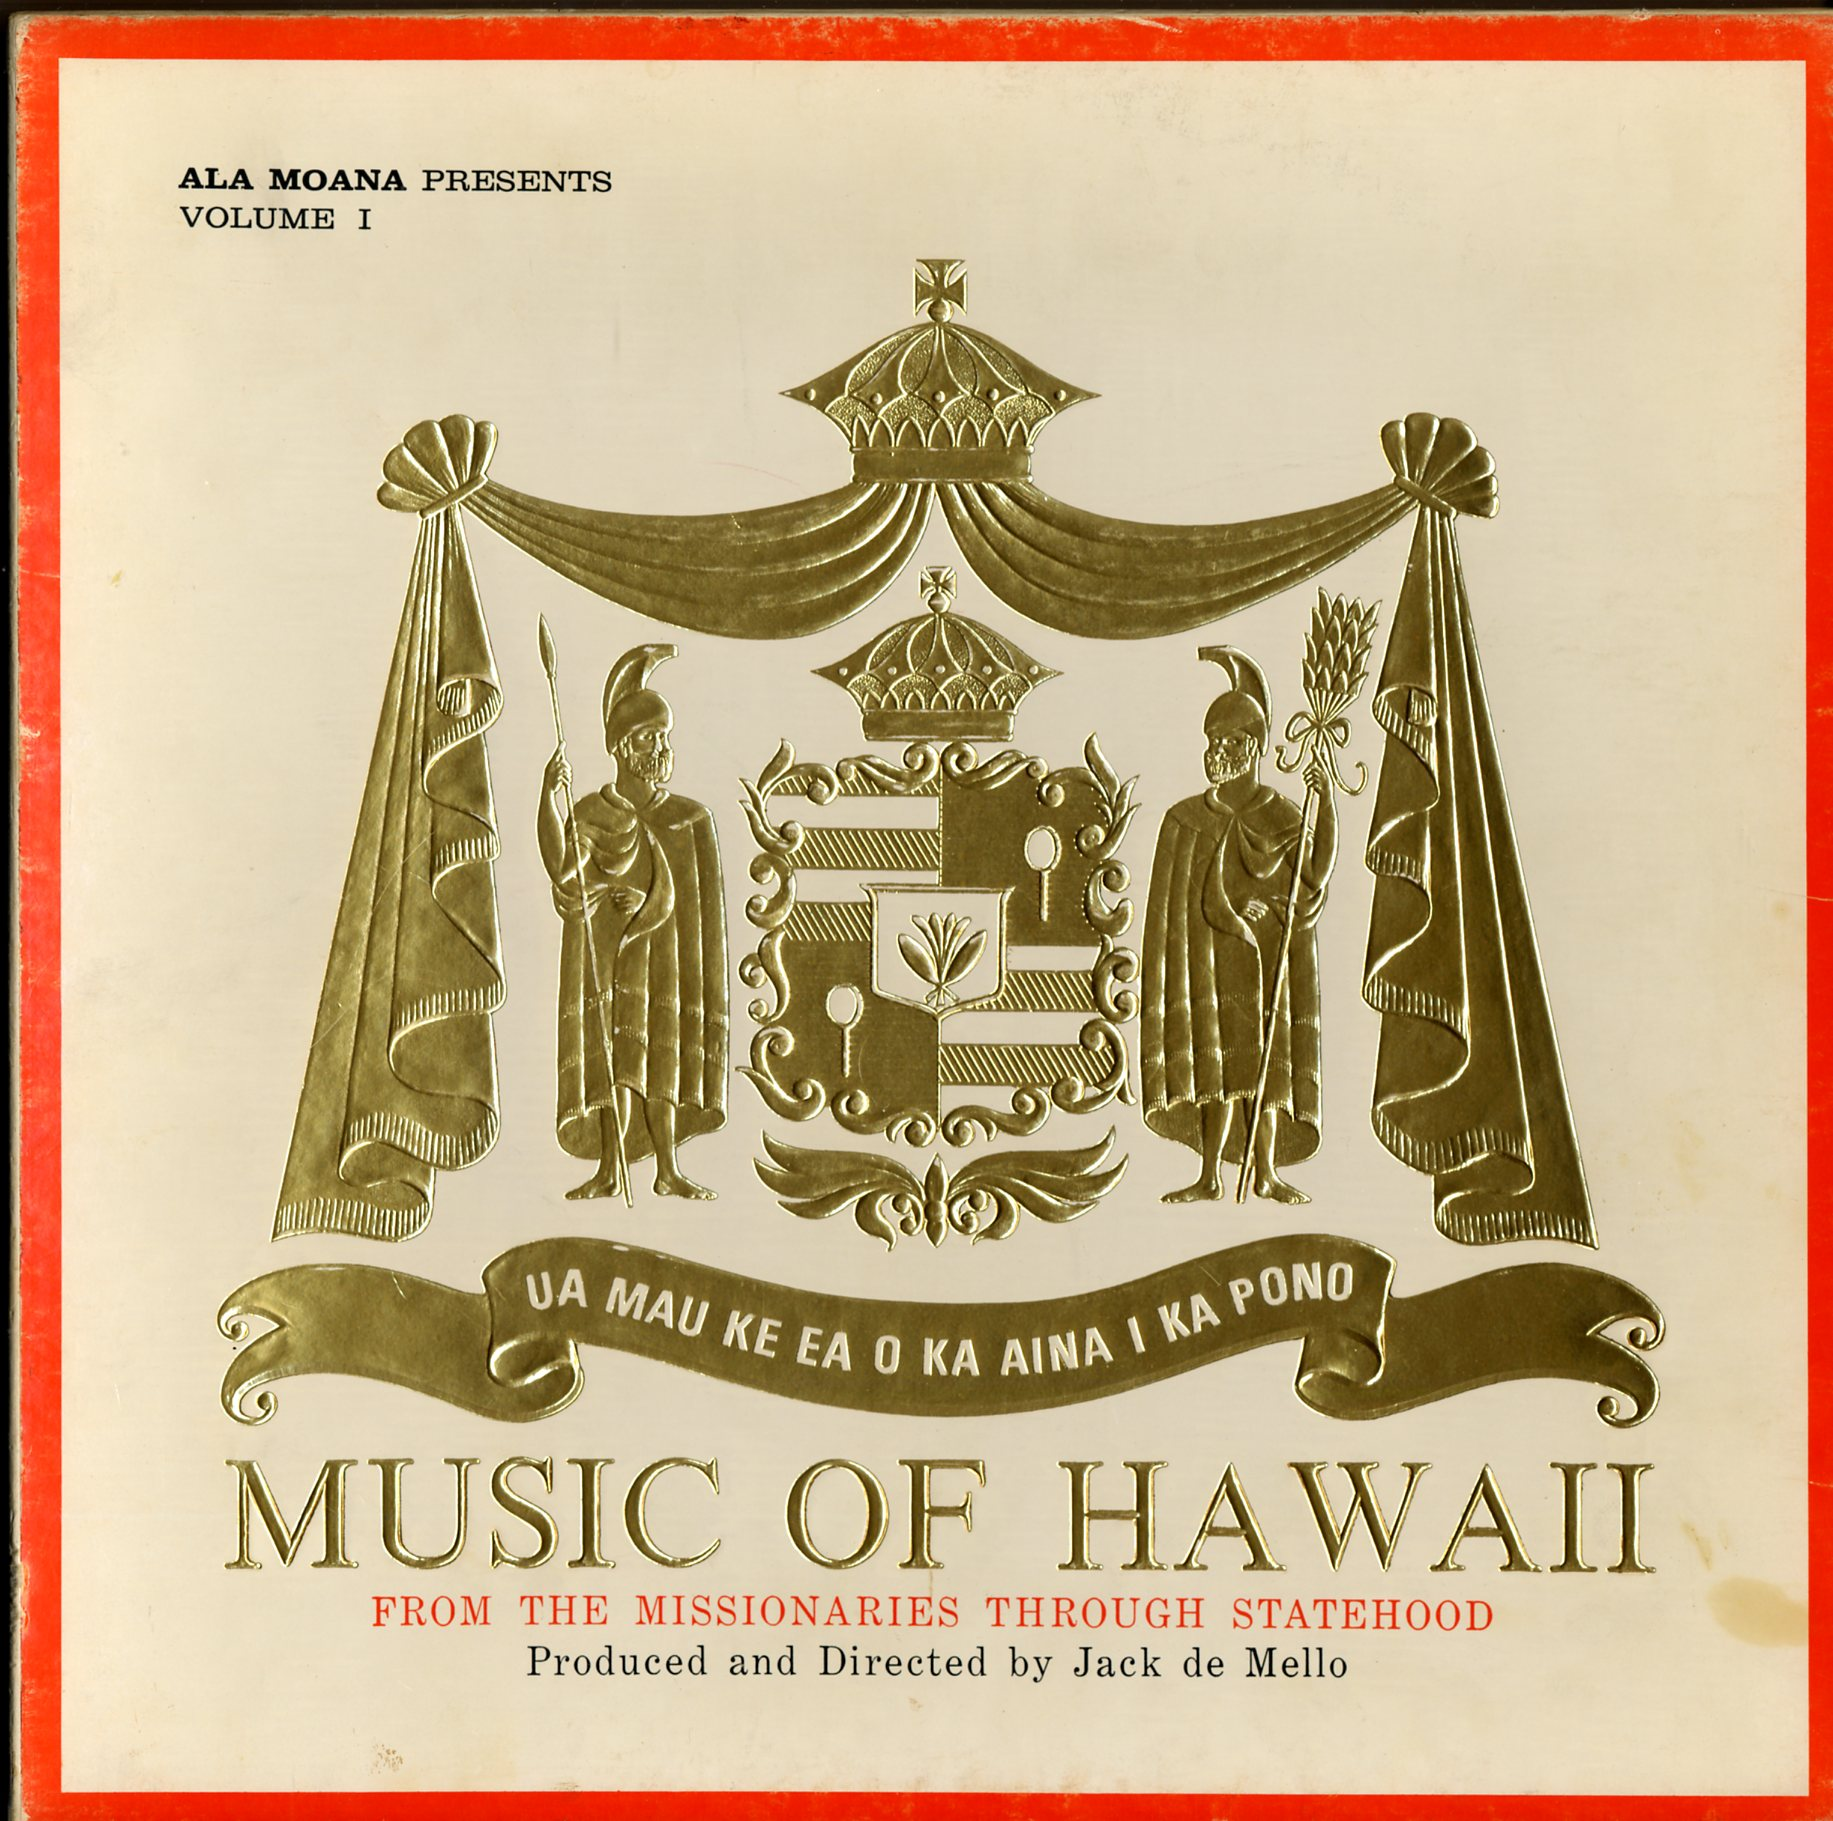 SR3S - Music of Hawaii on CD